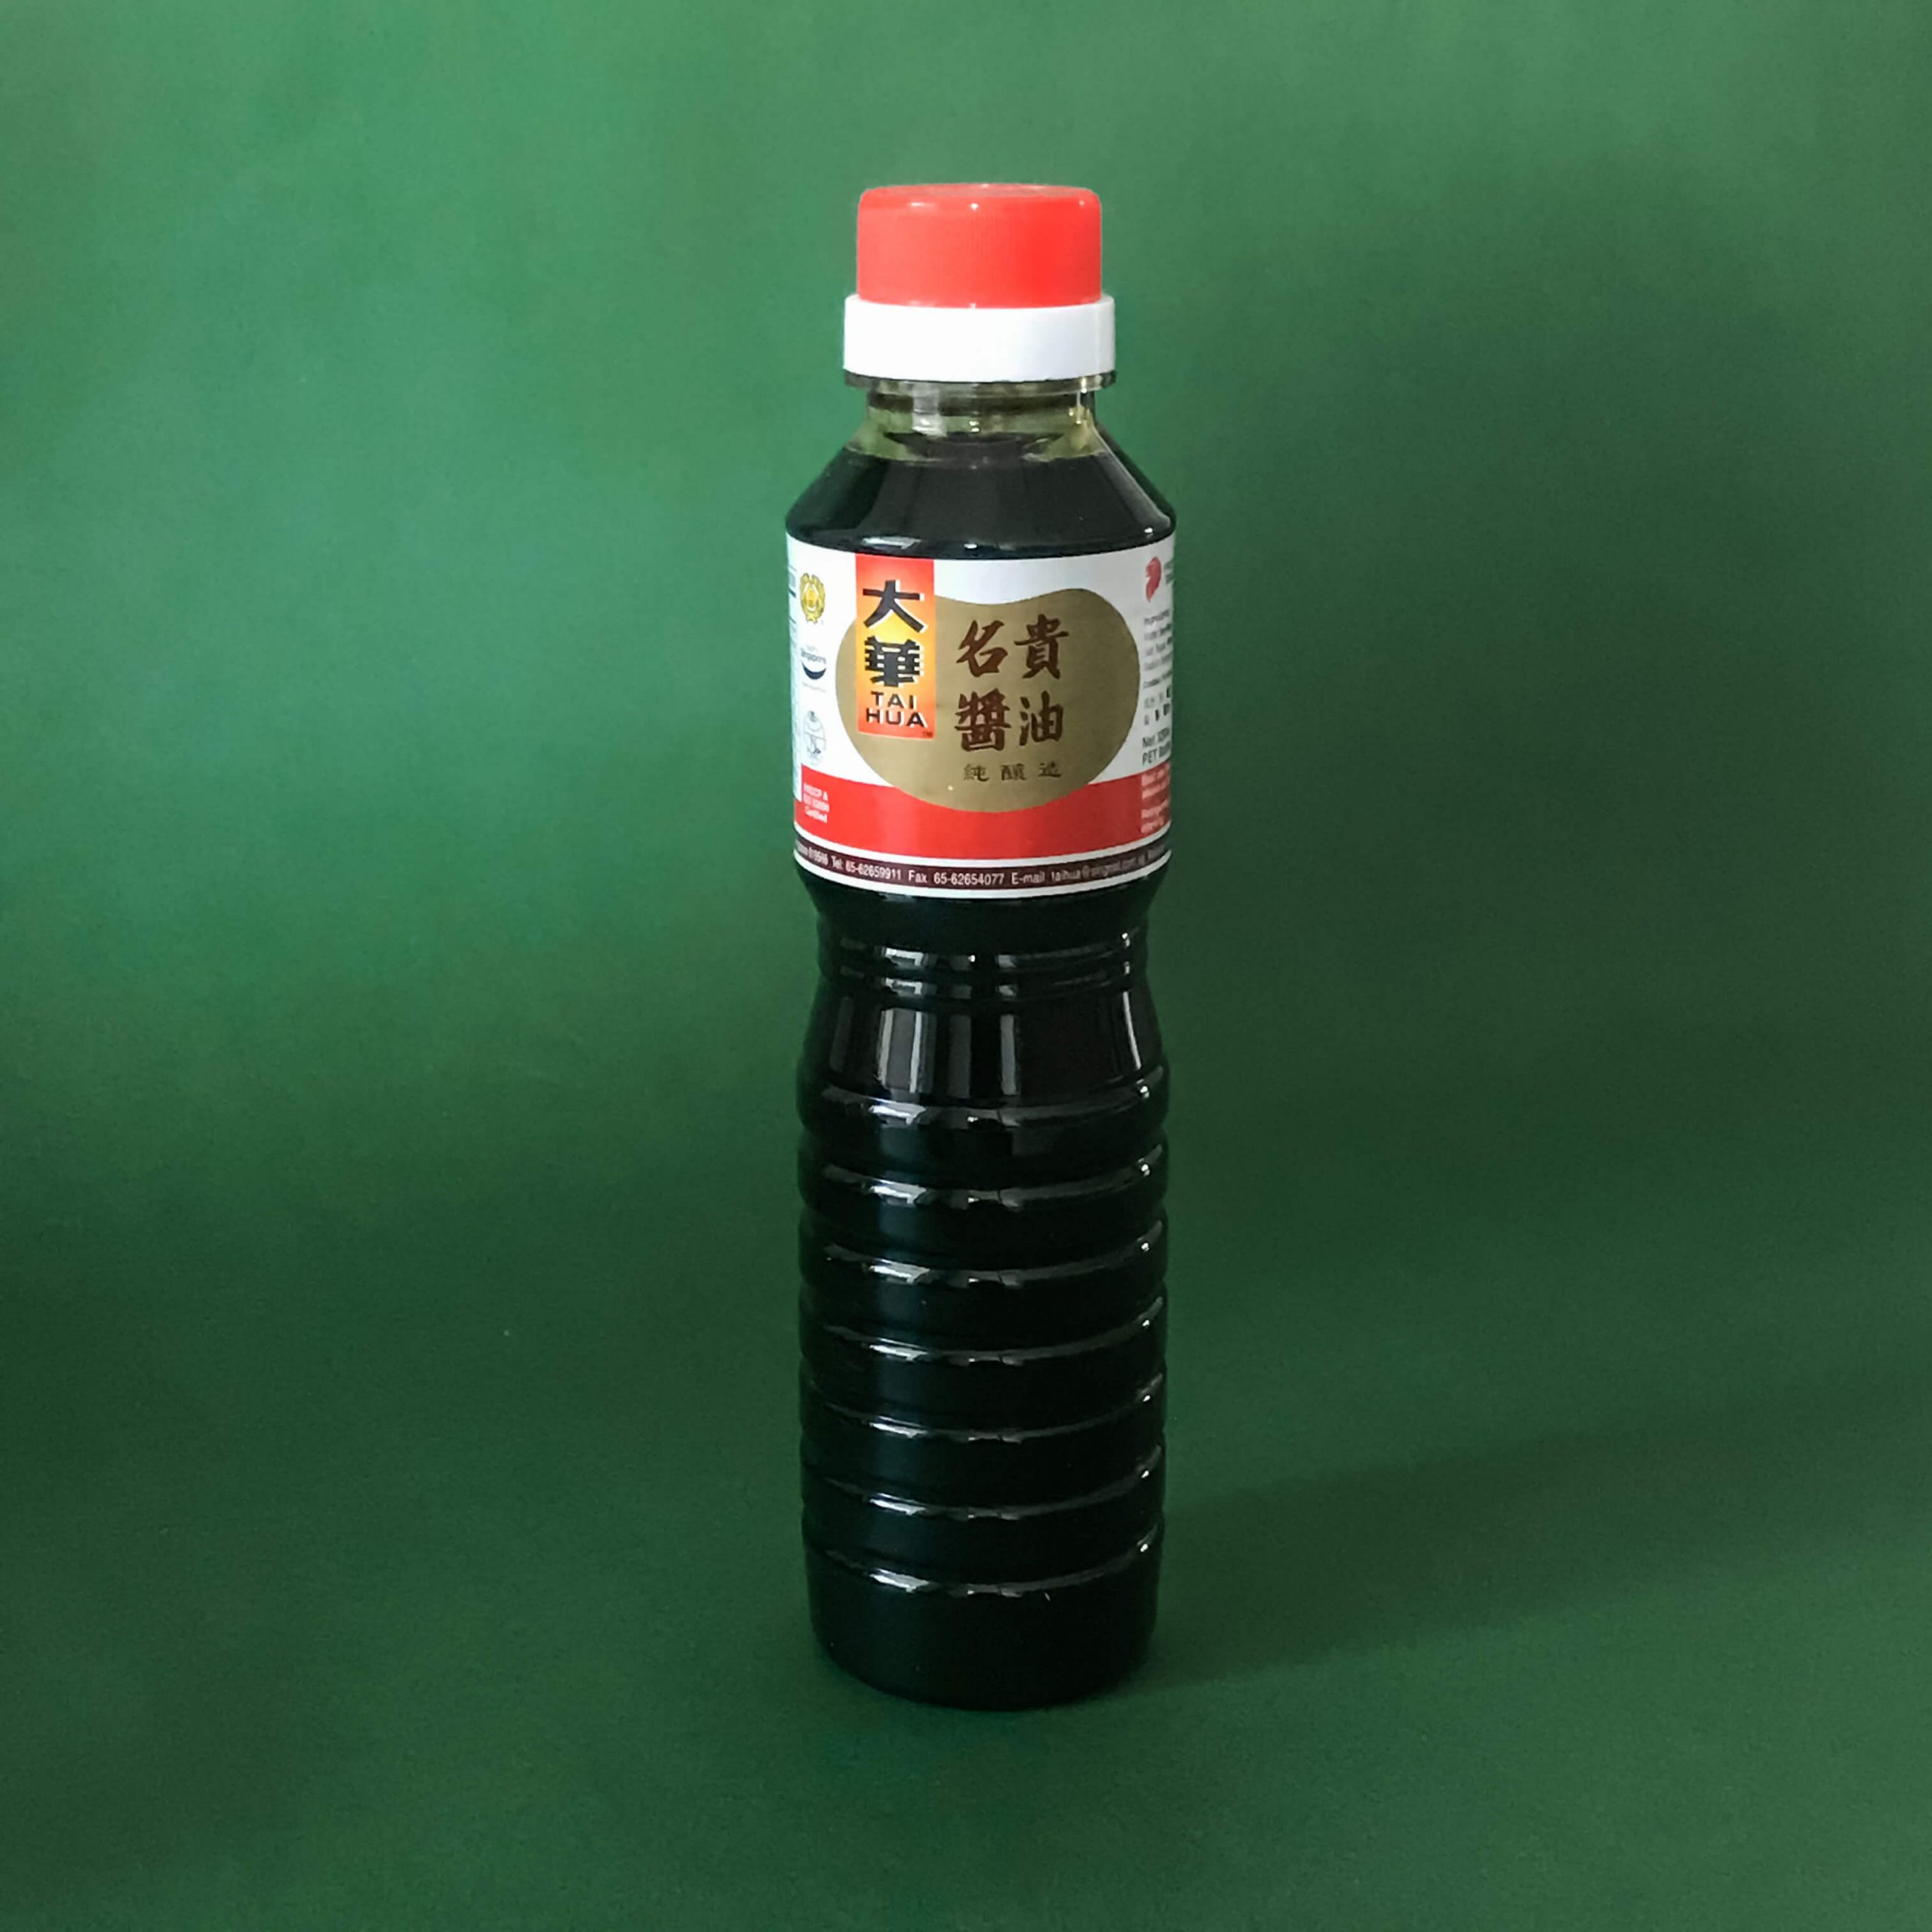 A tall bottle of Tai Hua Superior Dark Soy Sauce.